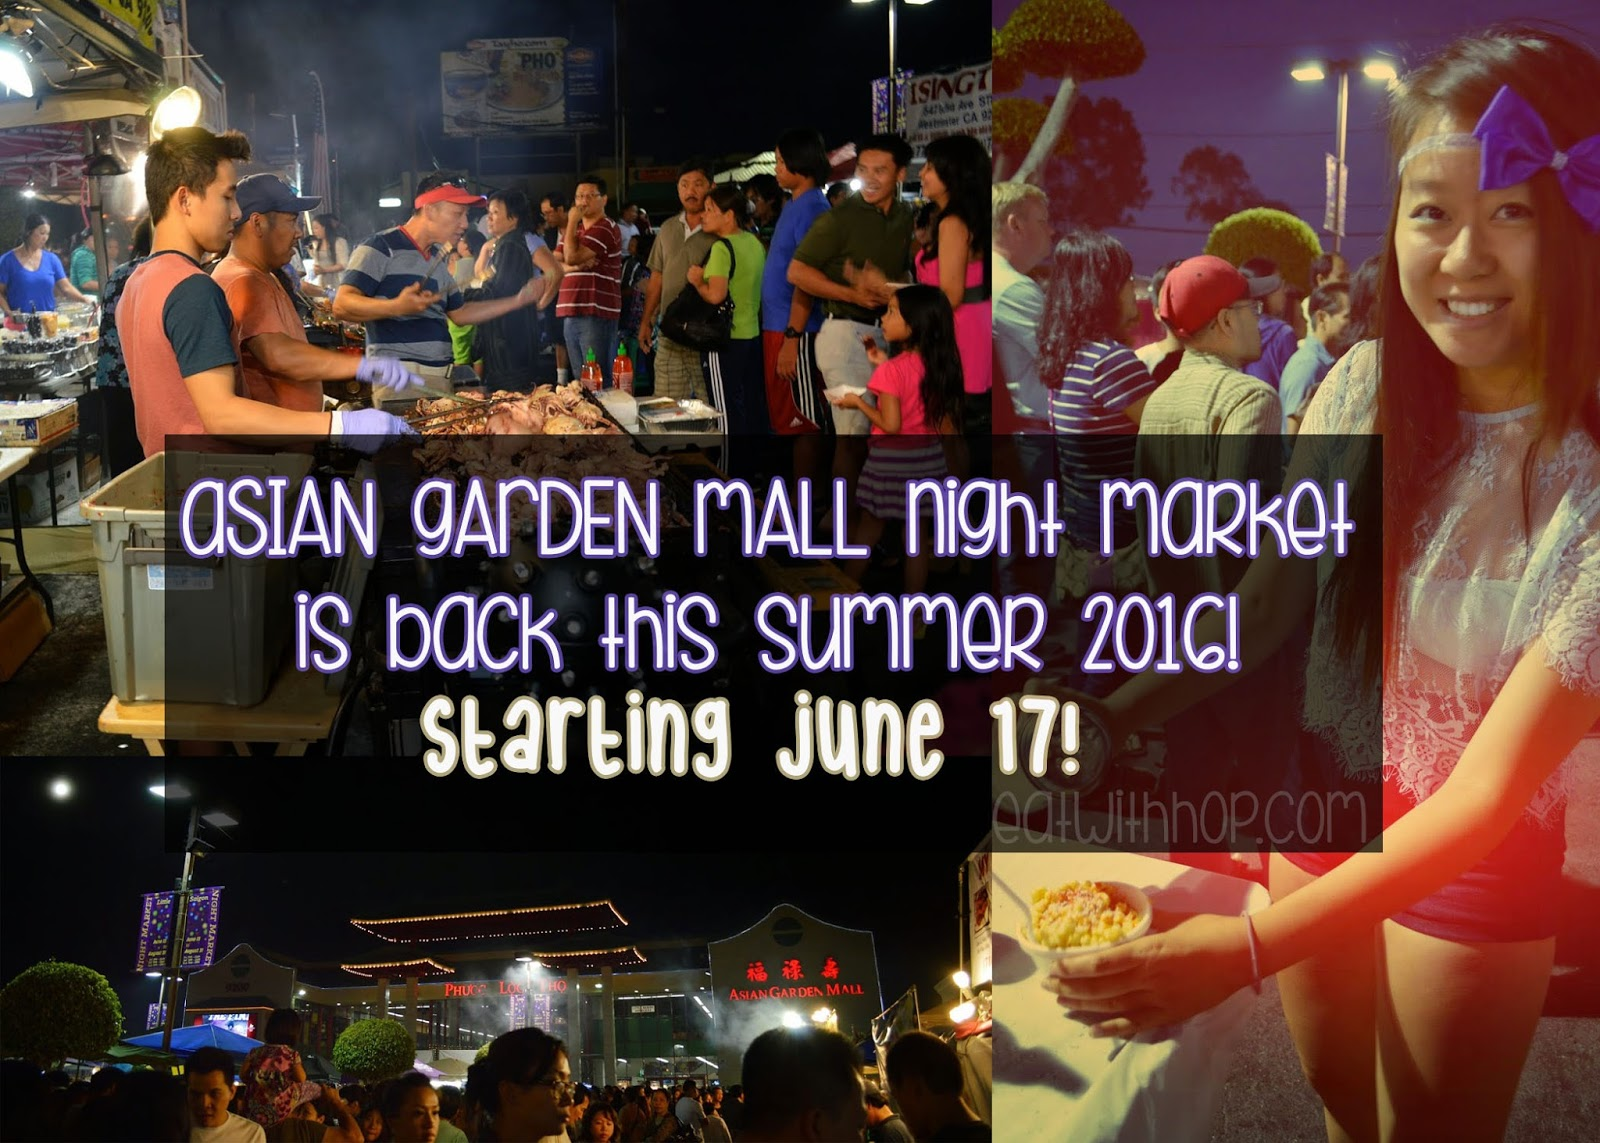 ASIAN GARDEN MALL 2016 SUMMER NIGHT MARKET IS BACK ON JUNE 17!